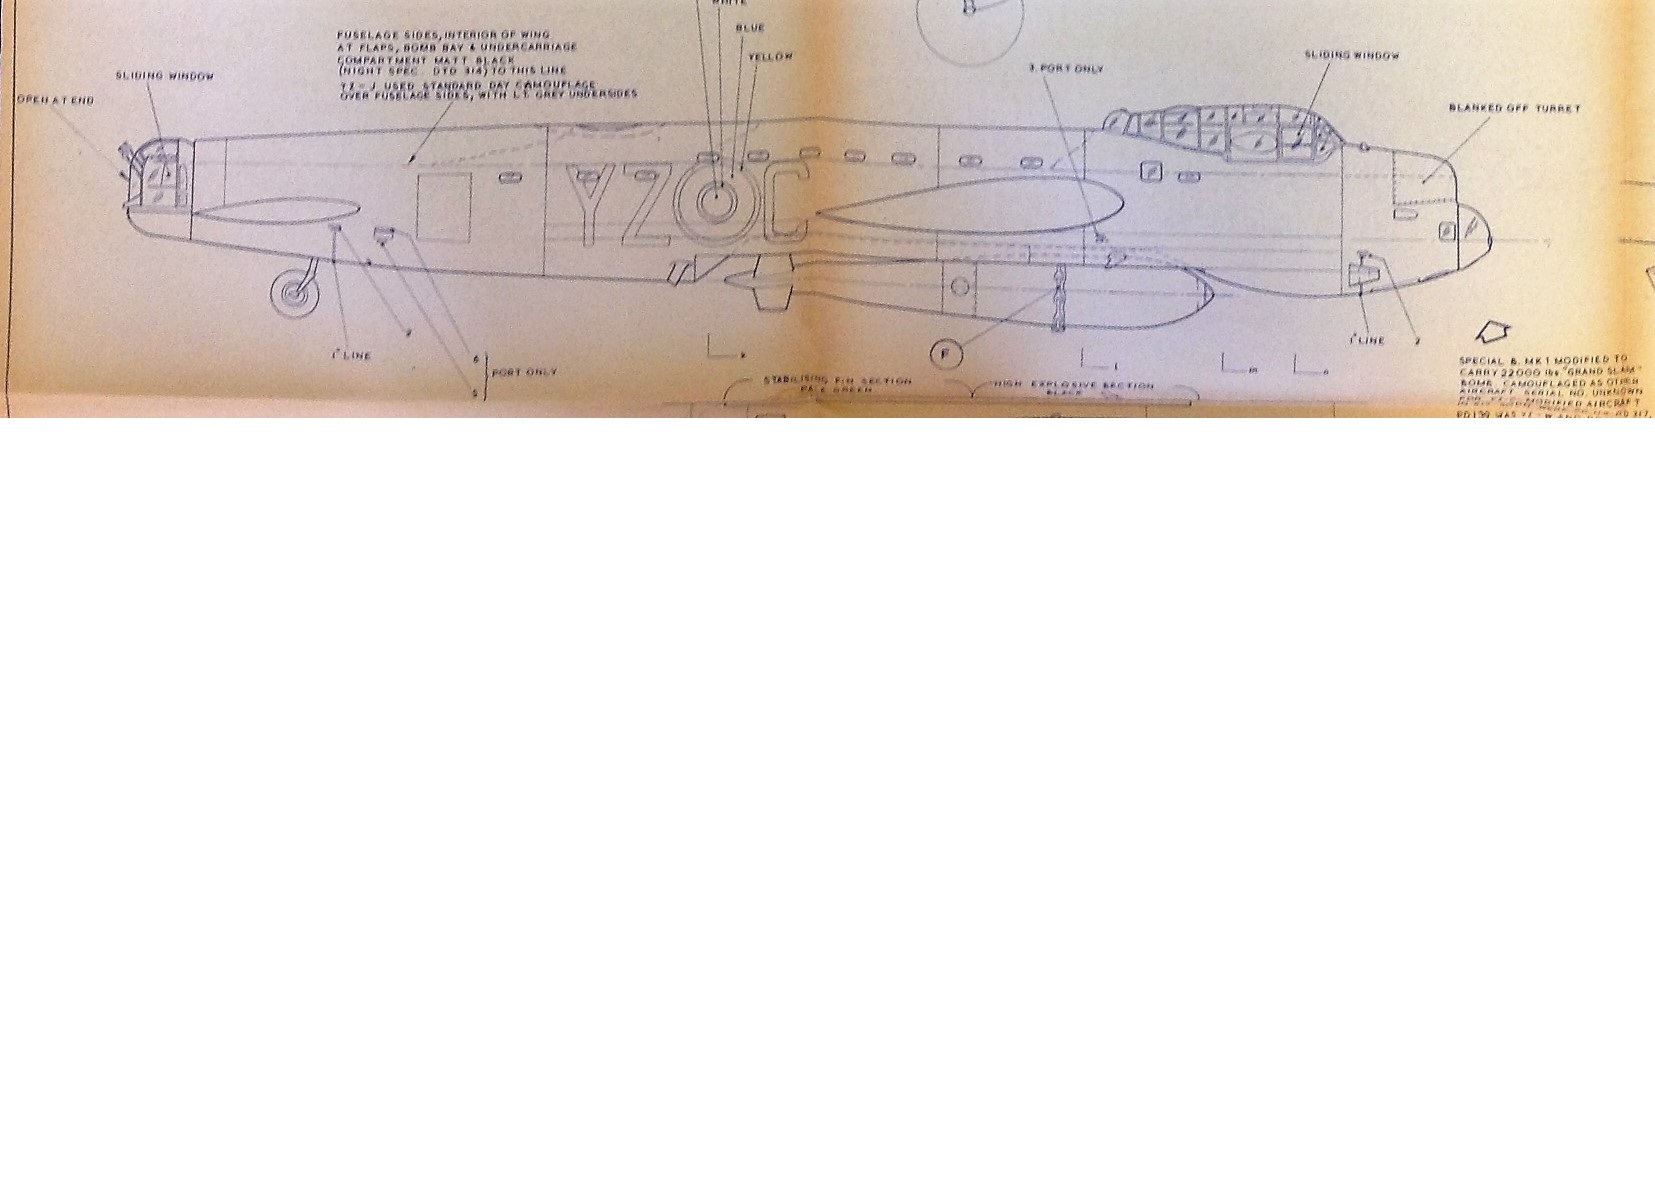 Lot 39 - World War Two Avro Lancaster Bomber MK1 Spec detailed drawings of the iconic world war Two bomber.